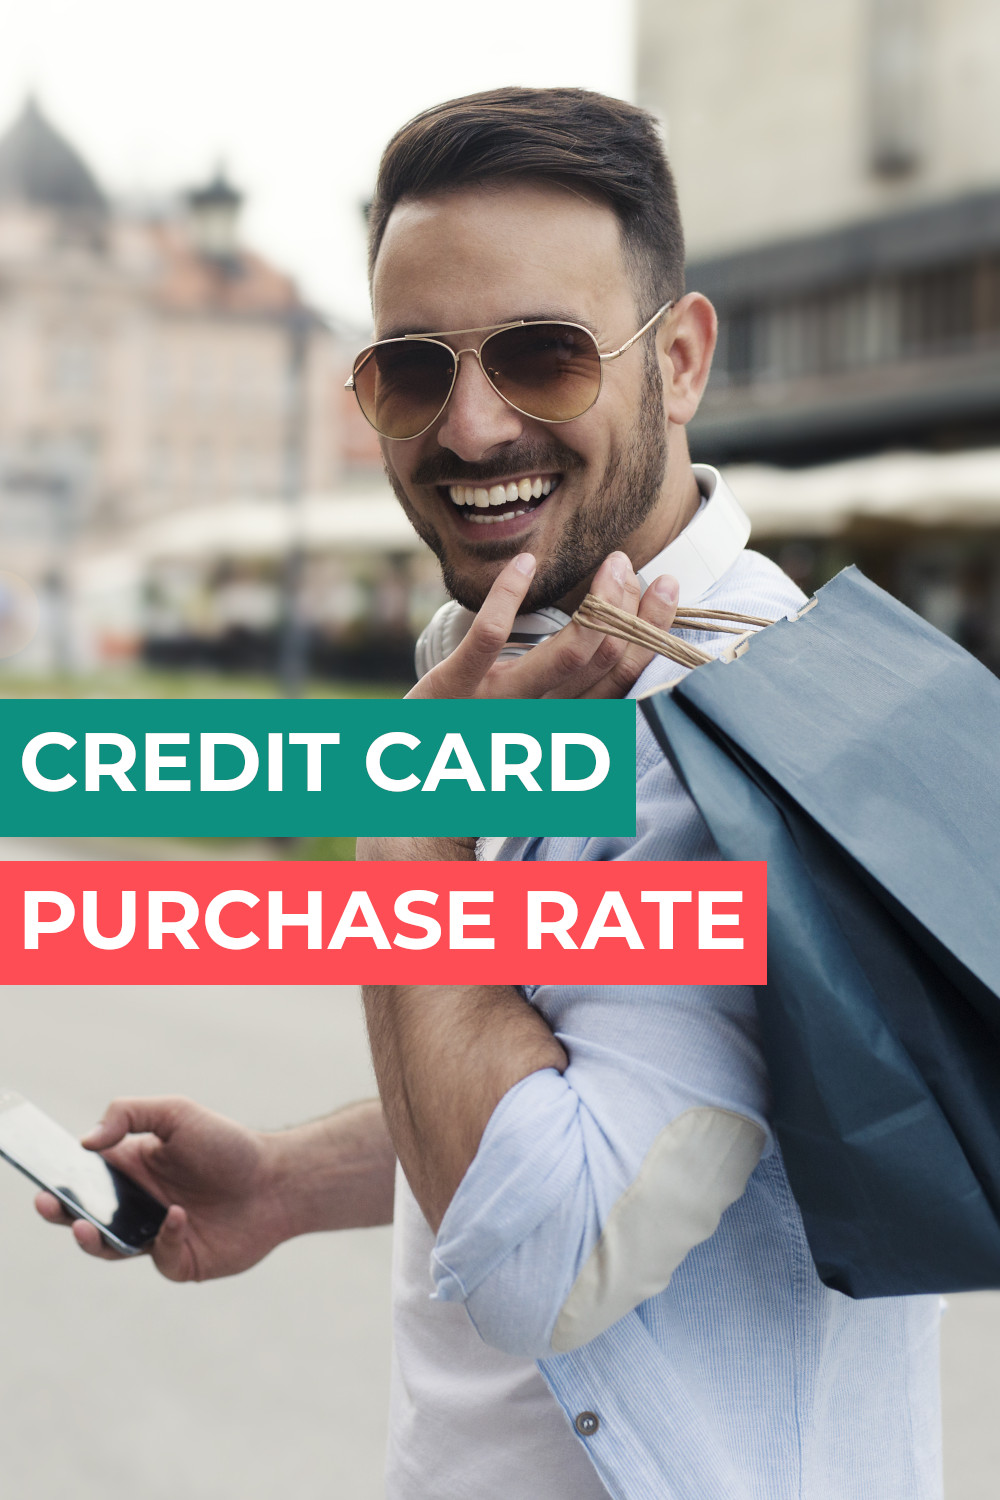 Credit card purchase rate - the complete guide